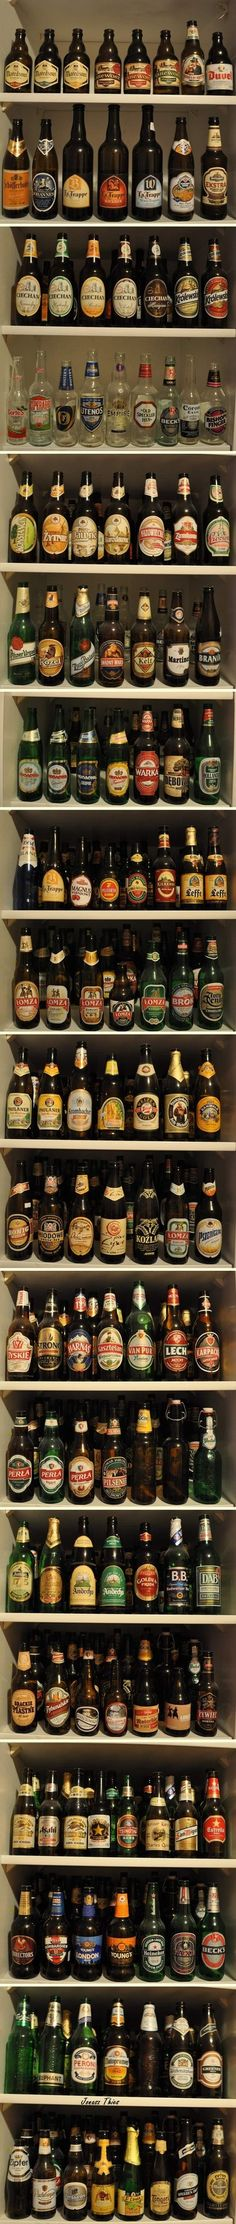 Beerwall, if we could collect our memory like this.. wow!